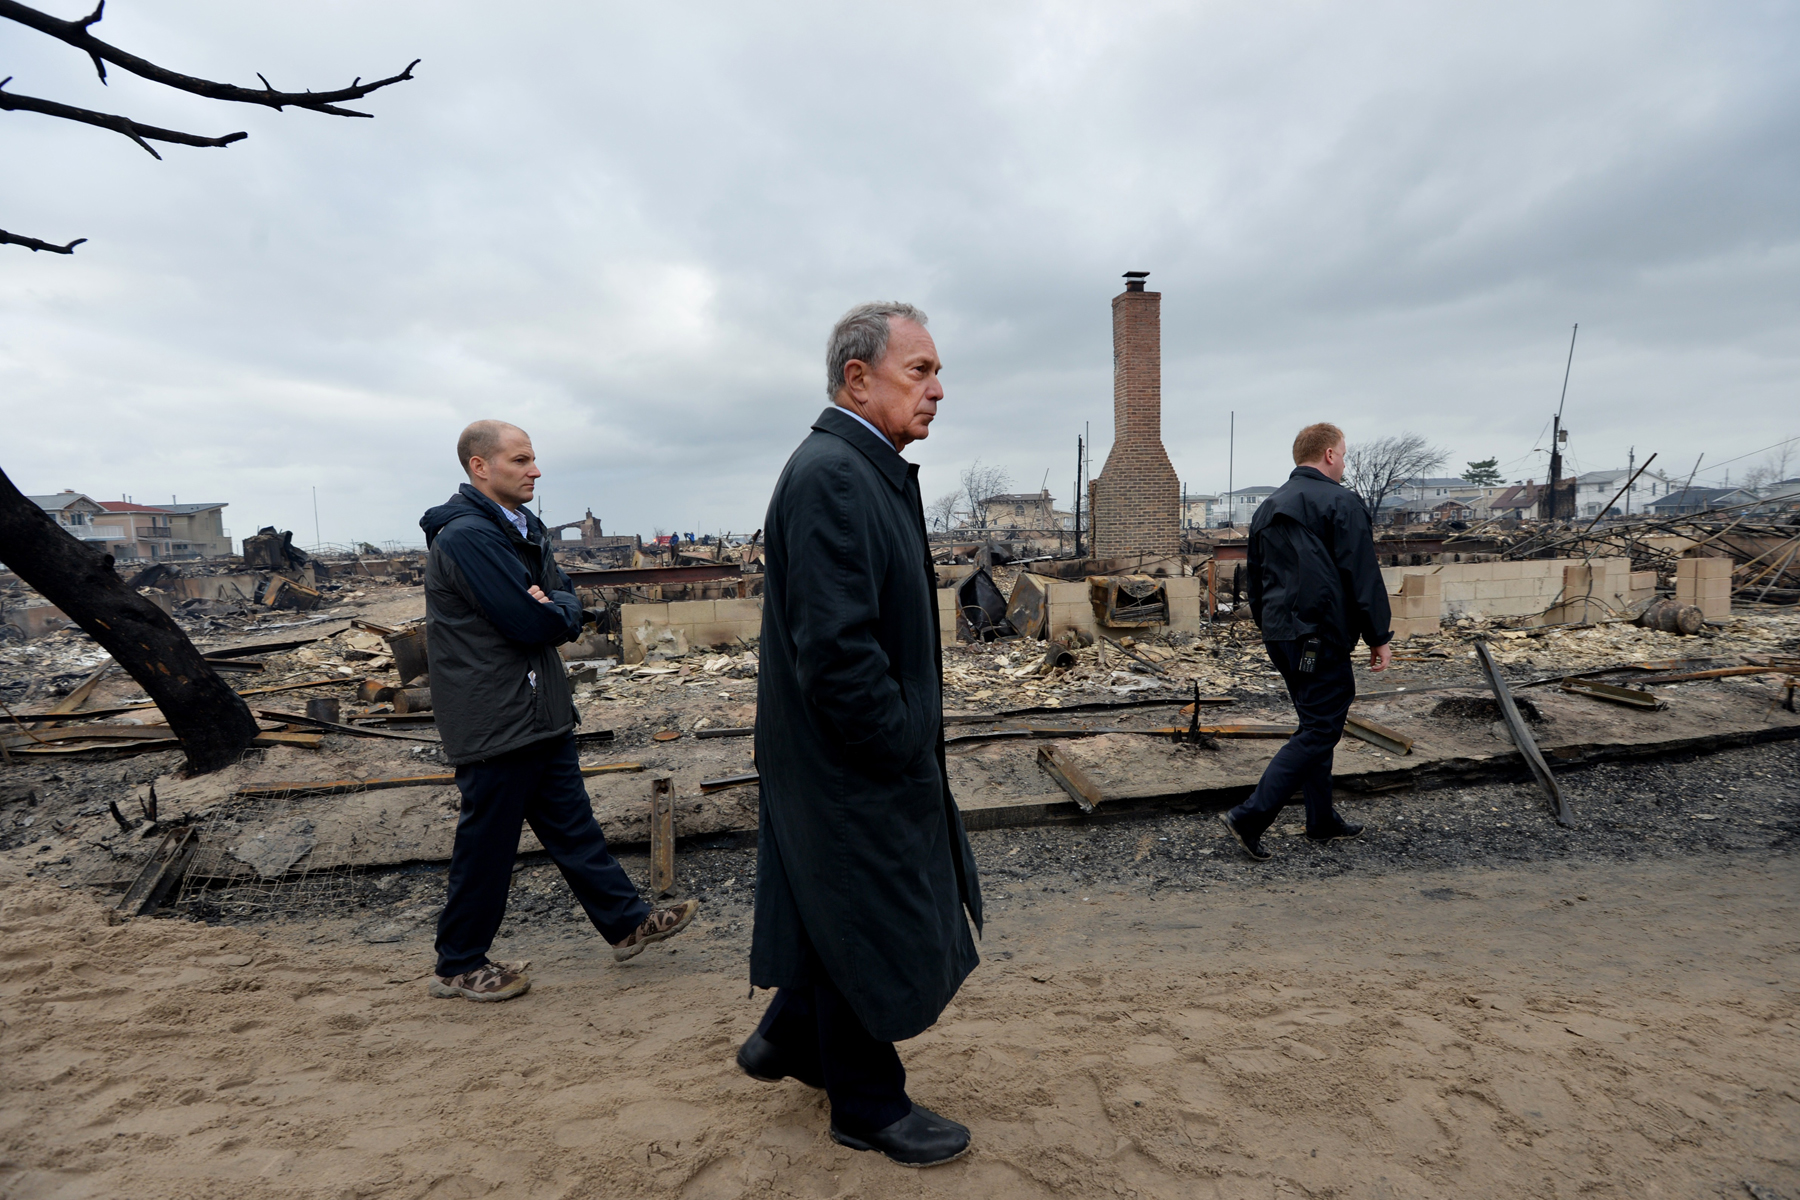 Bloomberg (center) views the Breezy Point area of Queens on Oct. 30, 2012, after fire destroyed about 80 homes as a result of Hurricane Sandy, which hit the area a day earlier.